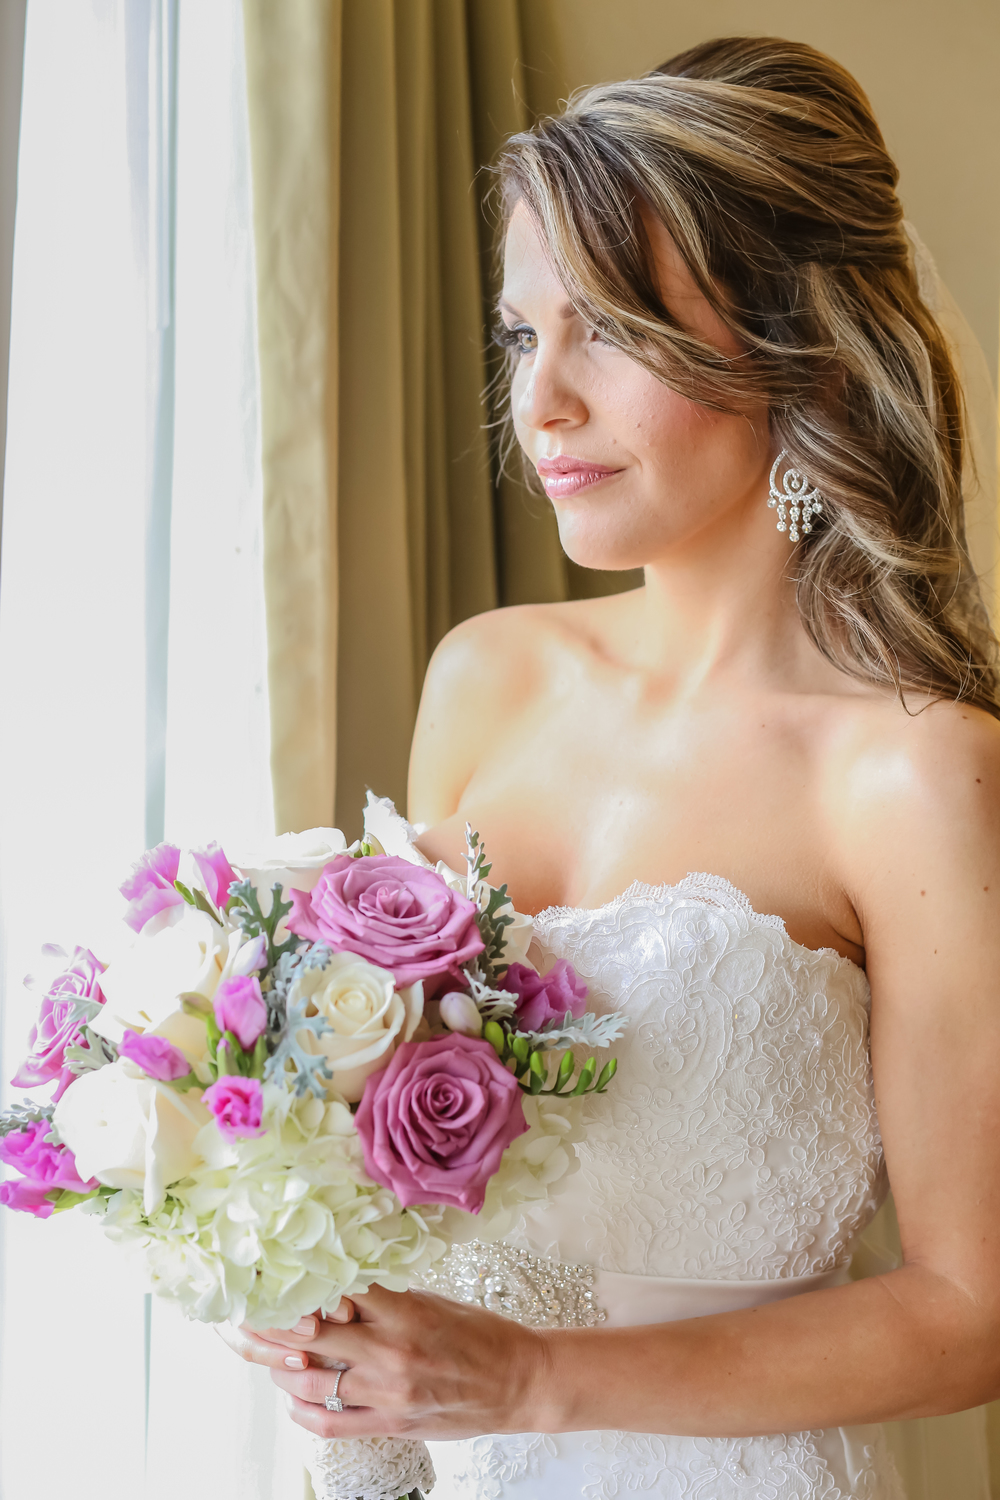 This stunning bridal bouquet consisted of hydrangea, roses, freesia, dusty miller and lisianthus.